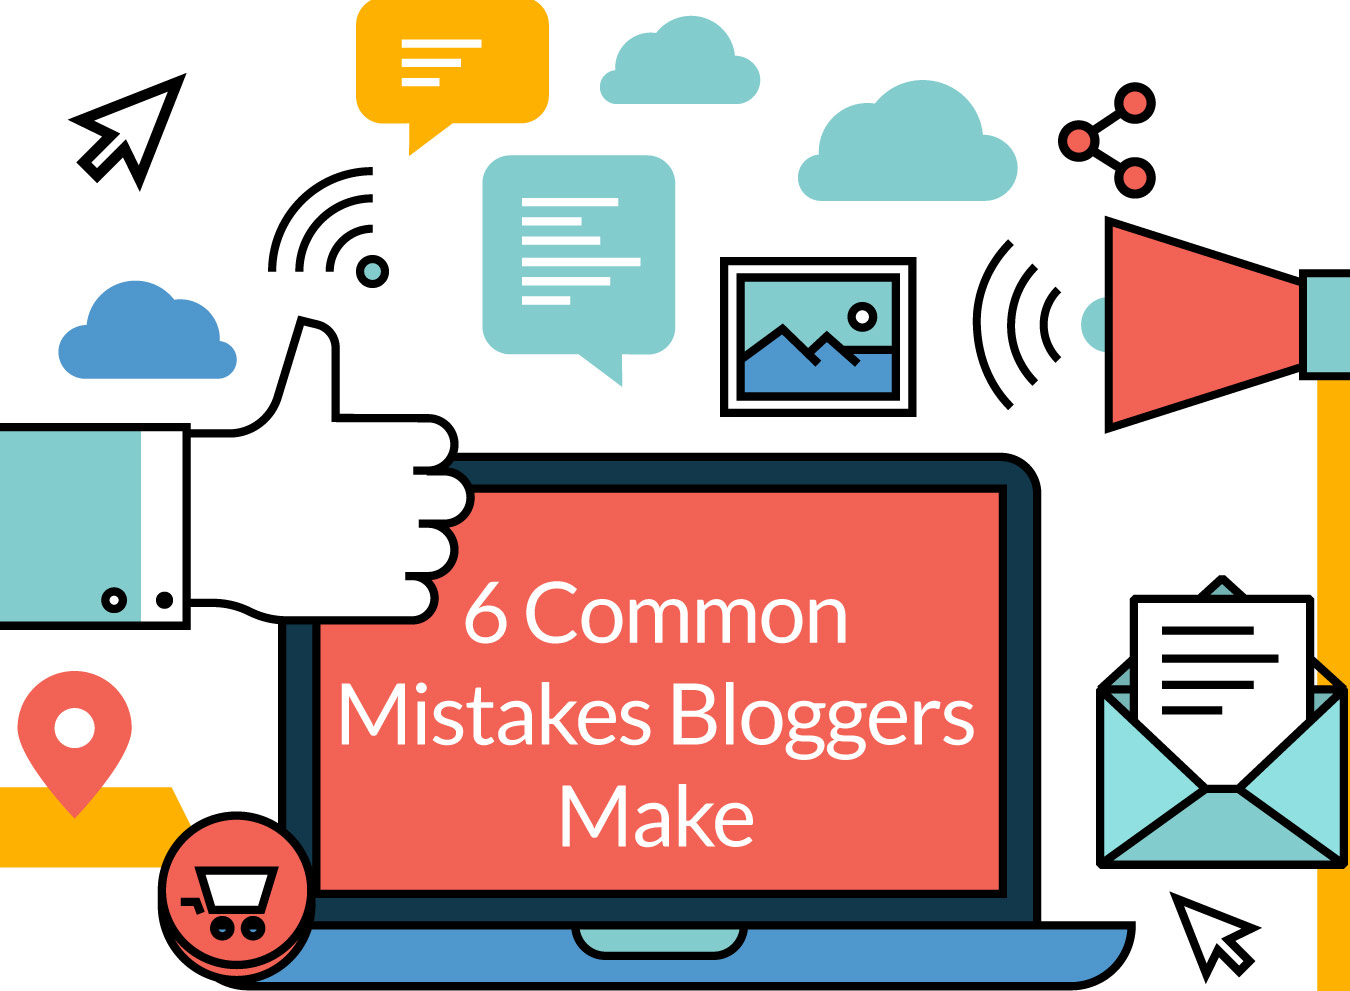 6 Common Mistakes Bloggers Make